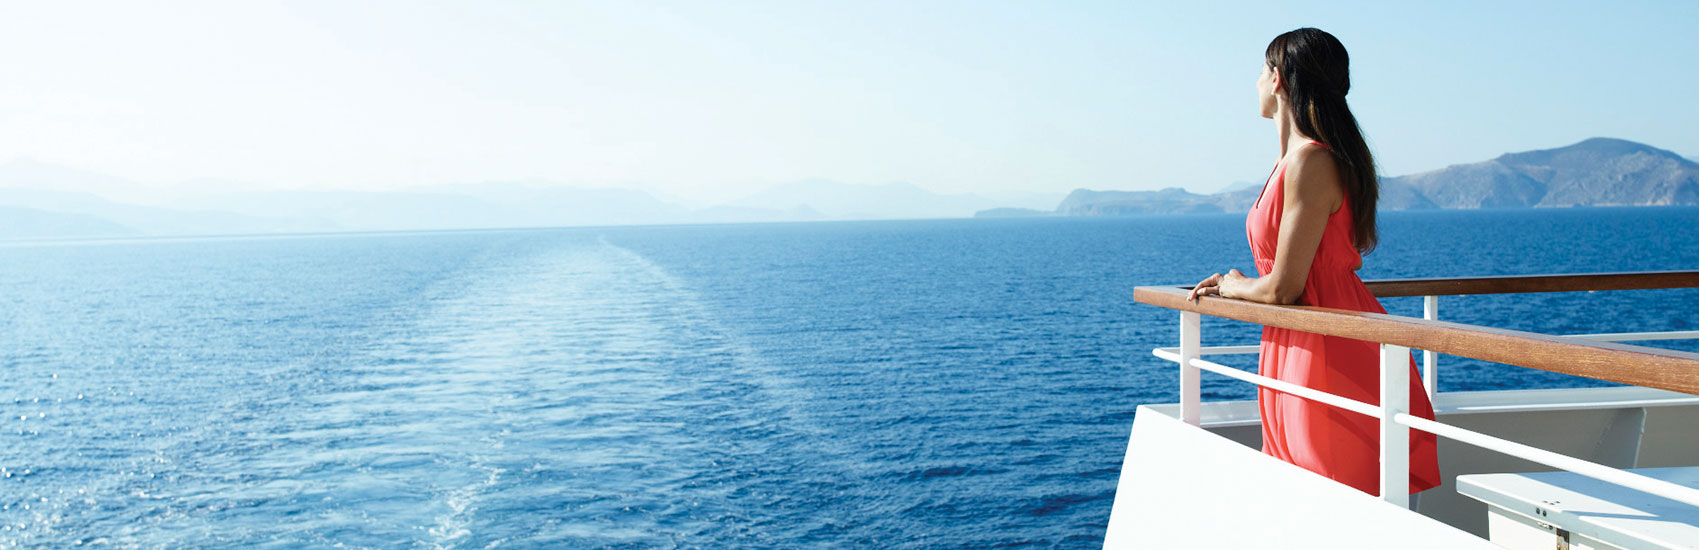 Sail Solo with Seabourn's Sensational Savings